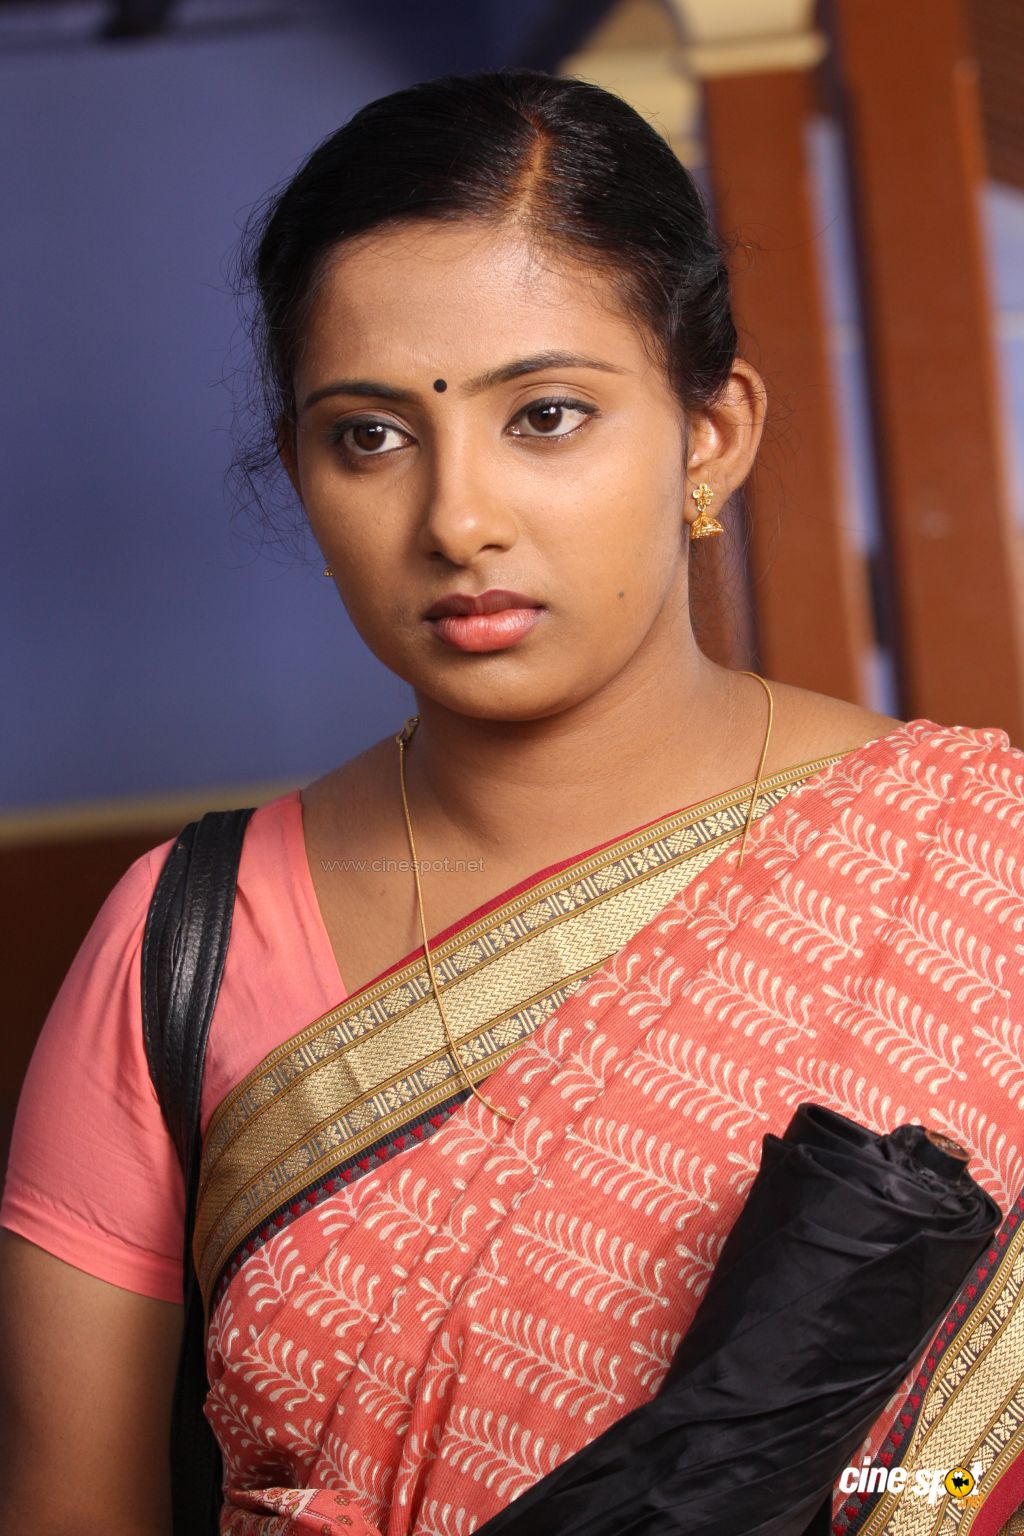 Niya Malayalam Movie, Serial Actress Photos - Mallu Actress